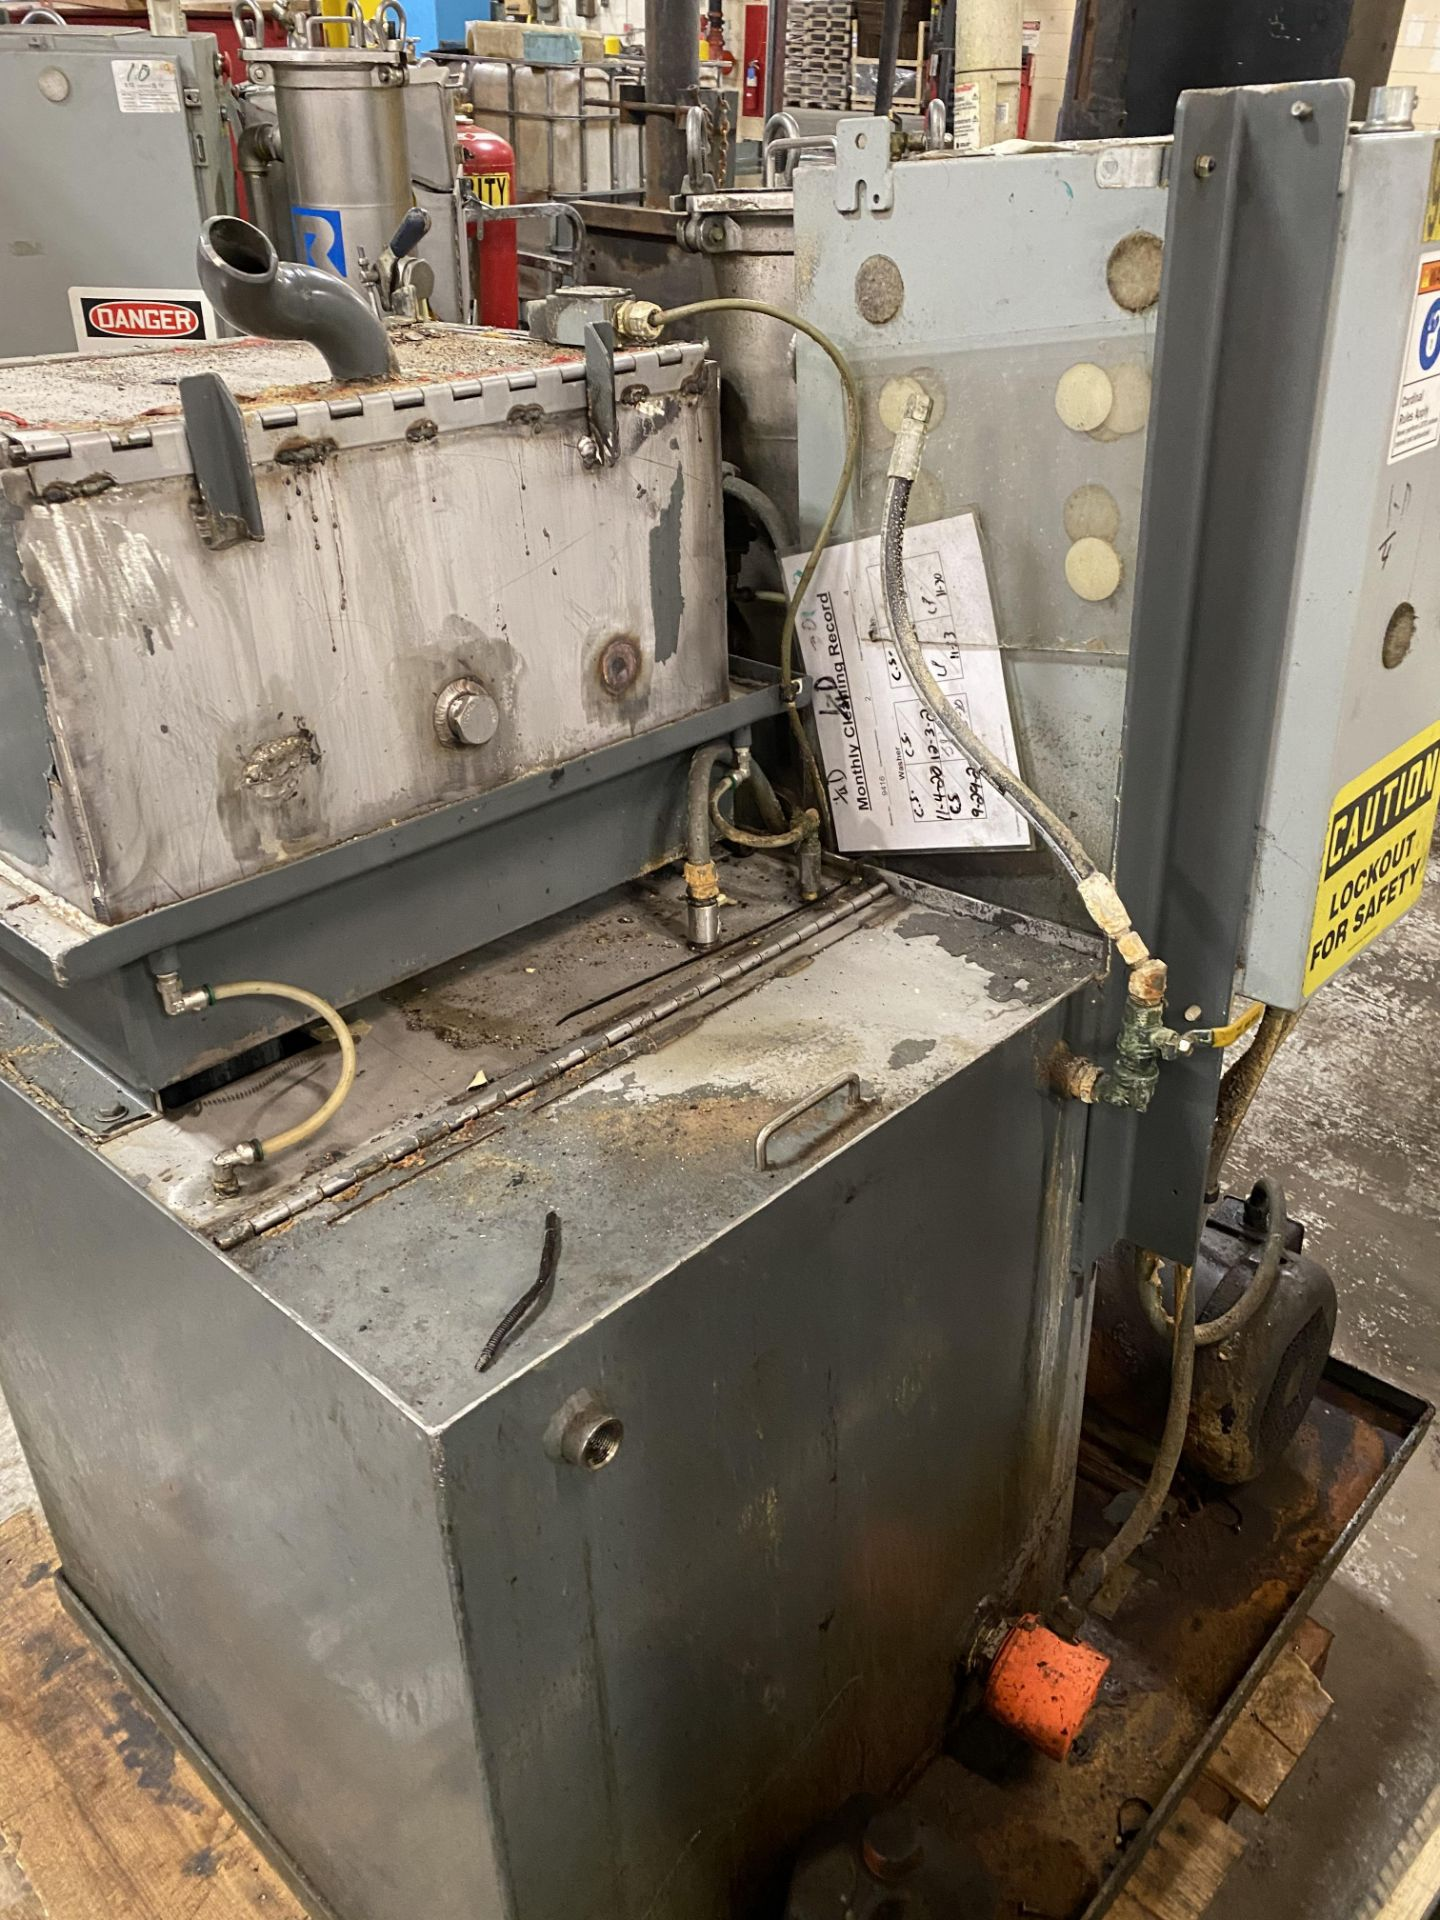 2010 NACCO FILTERED PARTS WASHER - Image 2 of 4